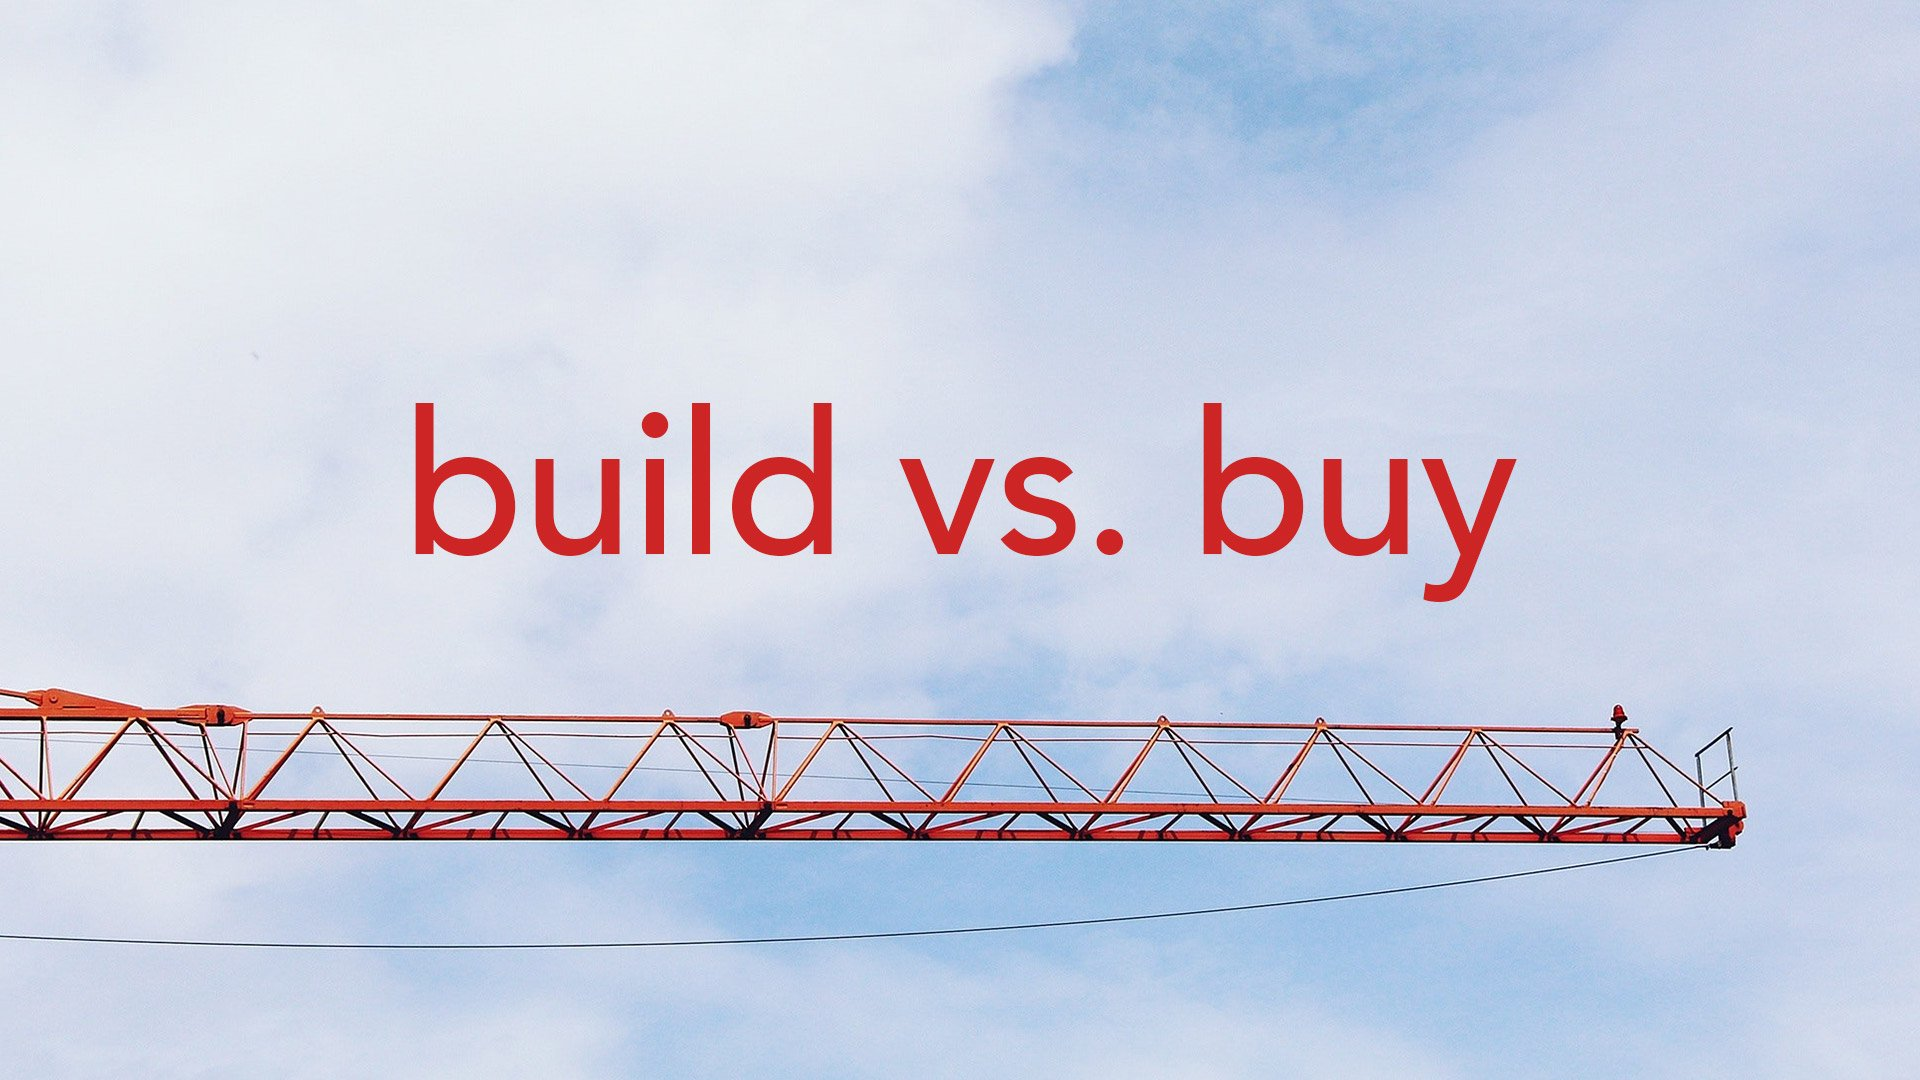 Buy. Then Build. The New Reality for Enterprise Software Development